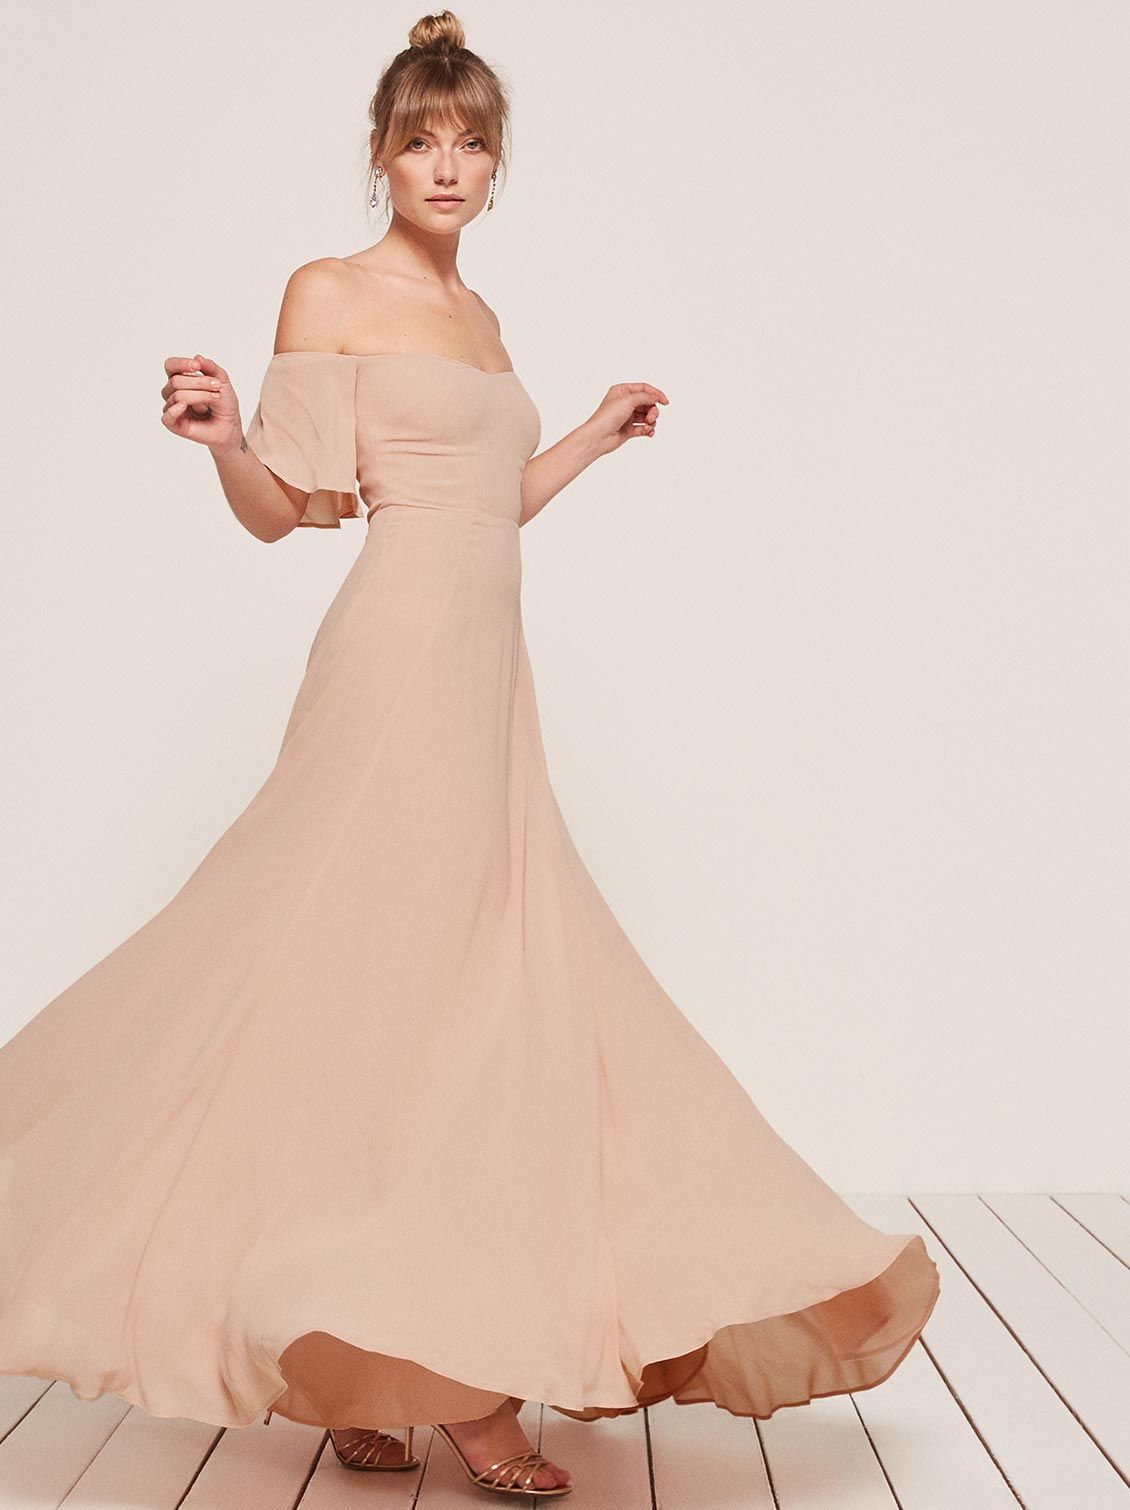 666d8d5eec Being naked is the  1 most sustainable option. Reformation is  2. Eco  friendly dresses